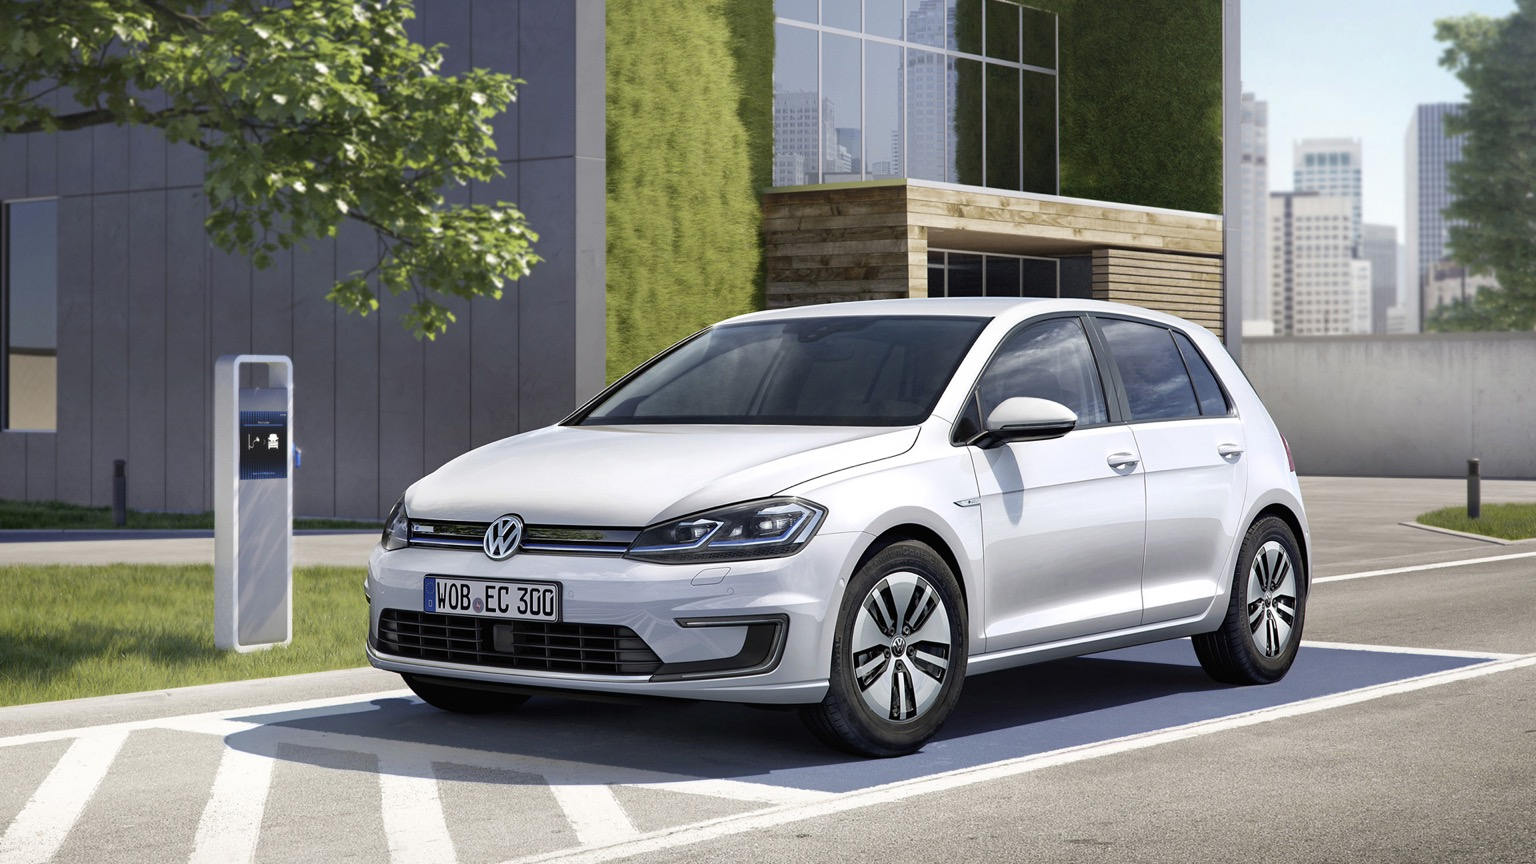 Volkswagen E Golf Price And Specifications Ev Database